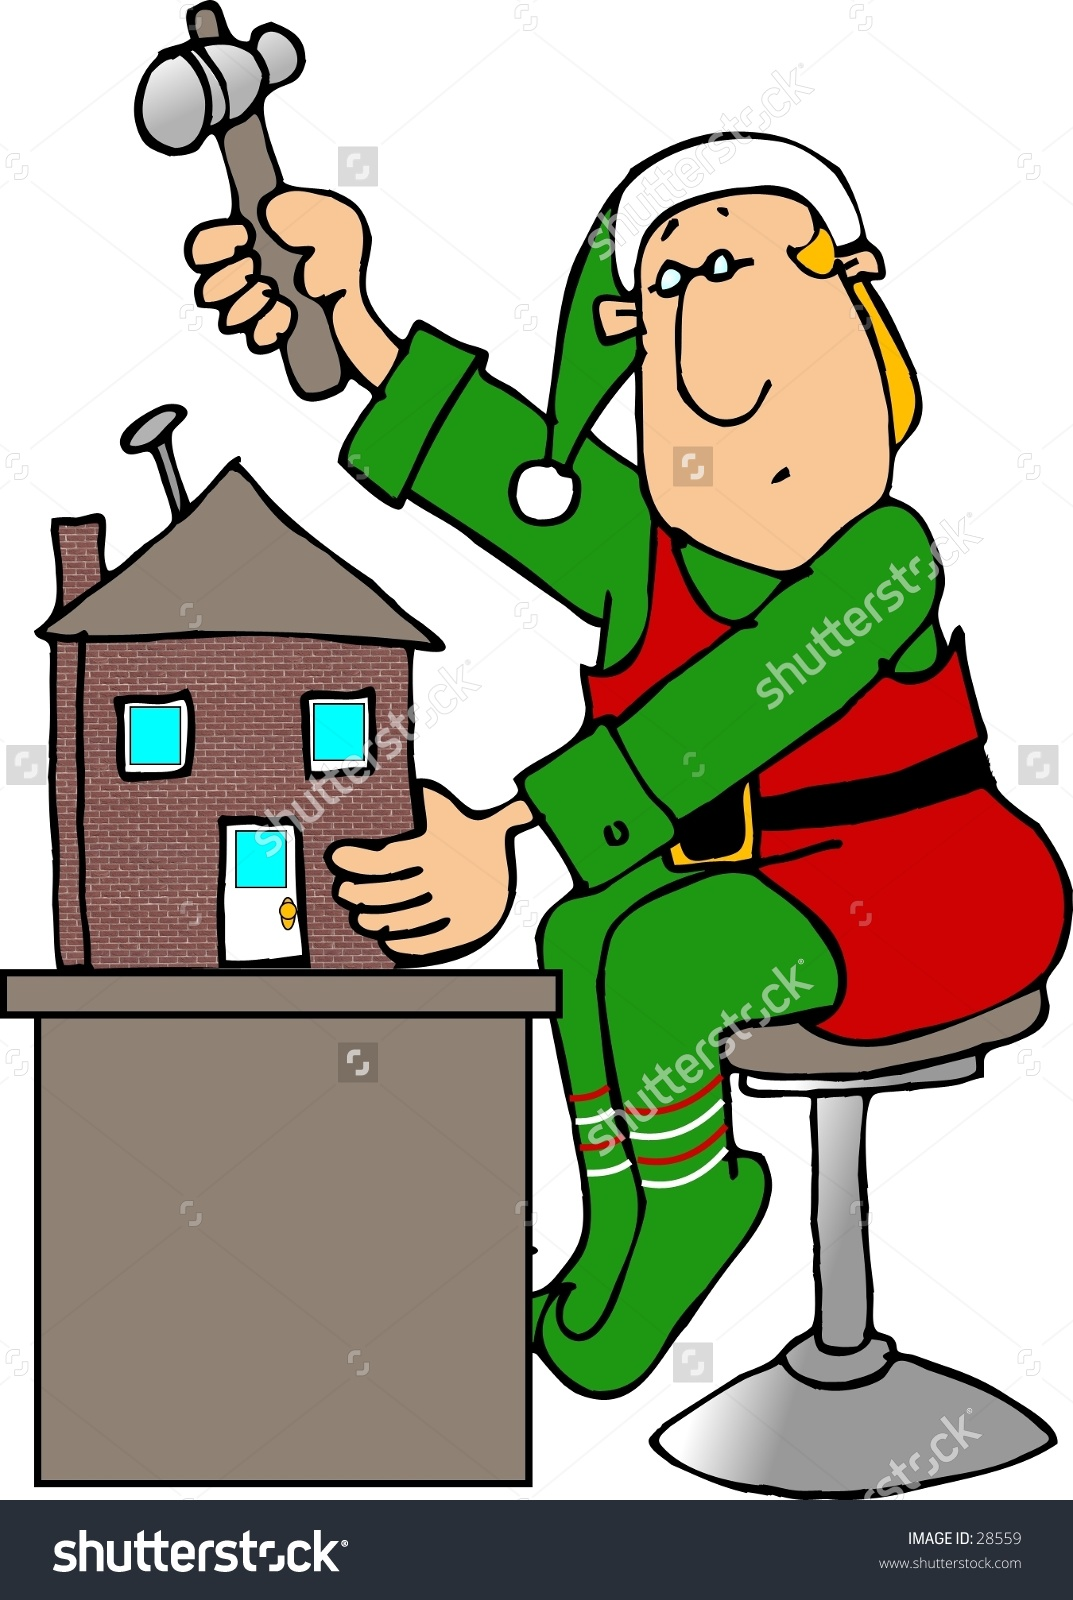 Clipart Illustration Christmas Elf Building Toy Stock Illustration.